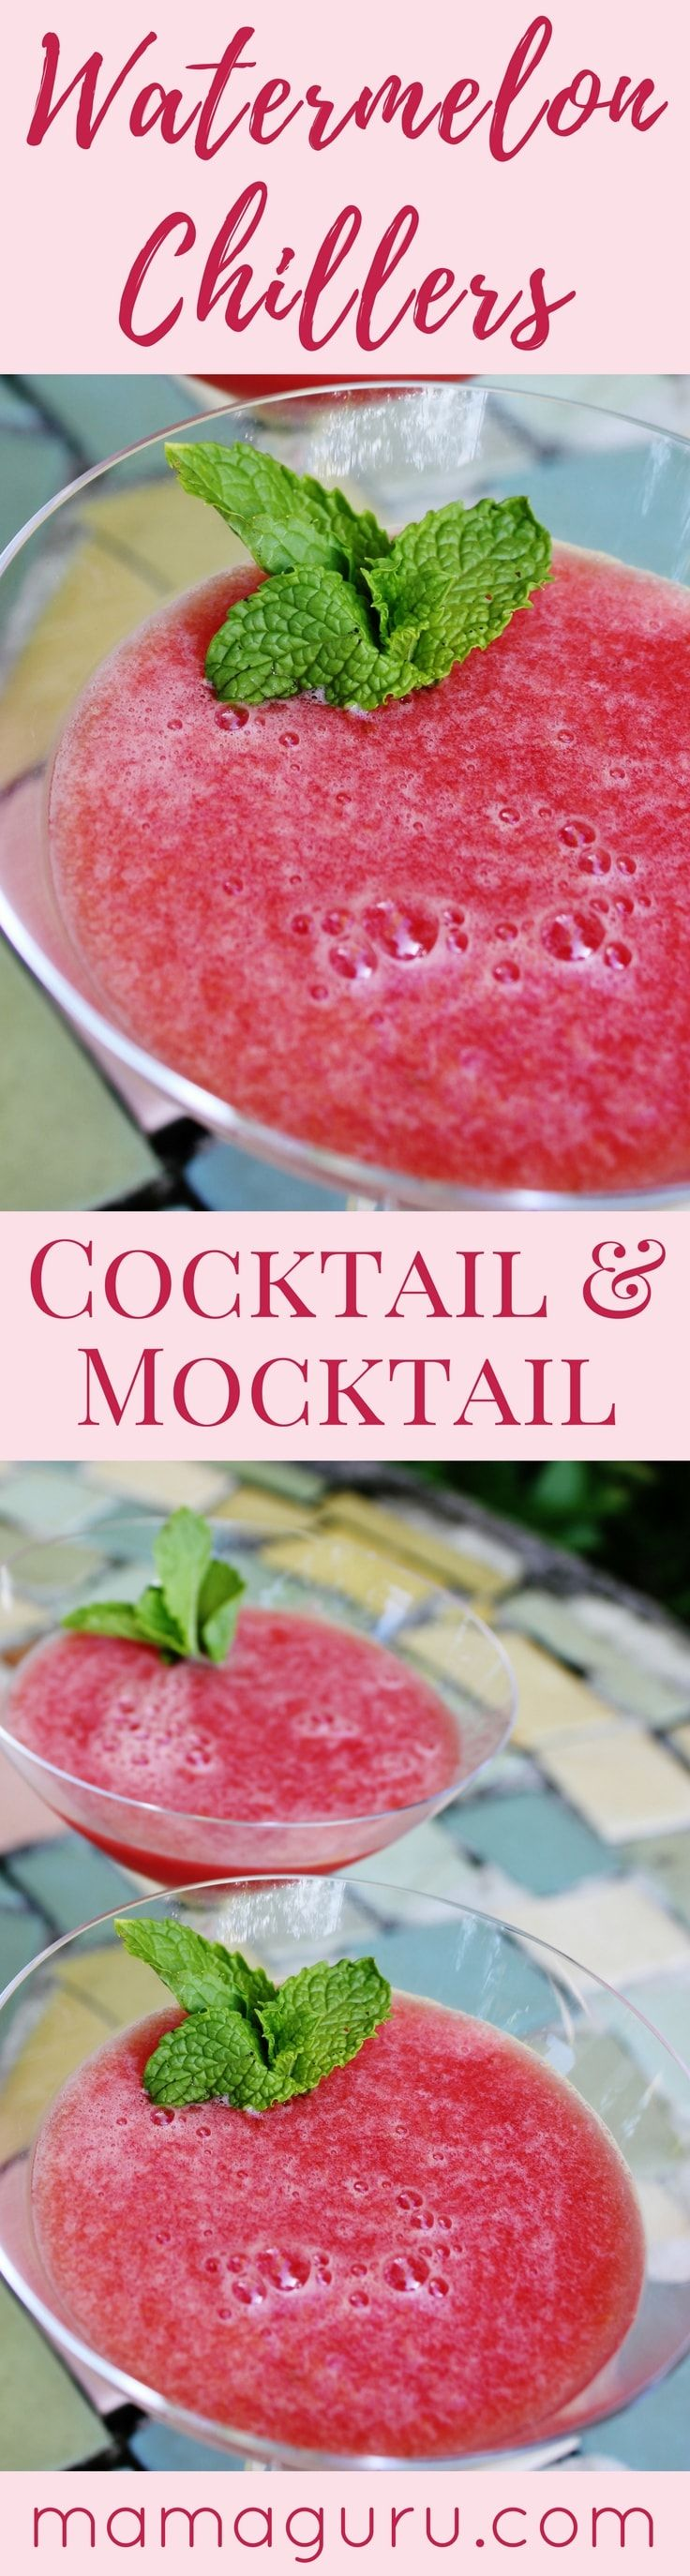 Watermelon Chillers ♥ Cocktail Recipe ♥ Mocktail Recipe ♥ Watermelon Recipe ♥ Kid Friendly Recipe ♥ Summer Recipe